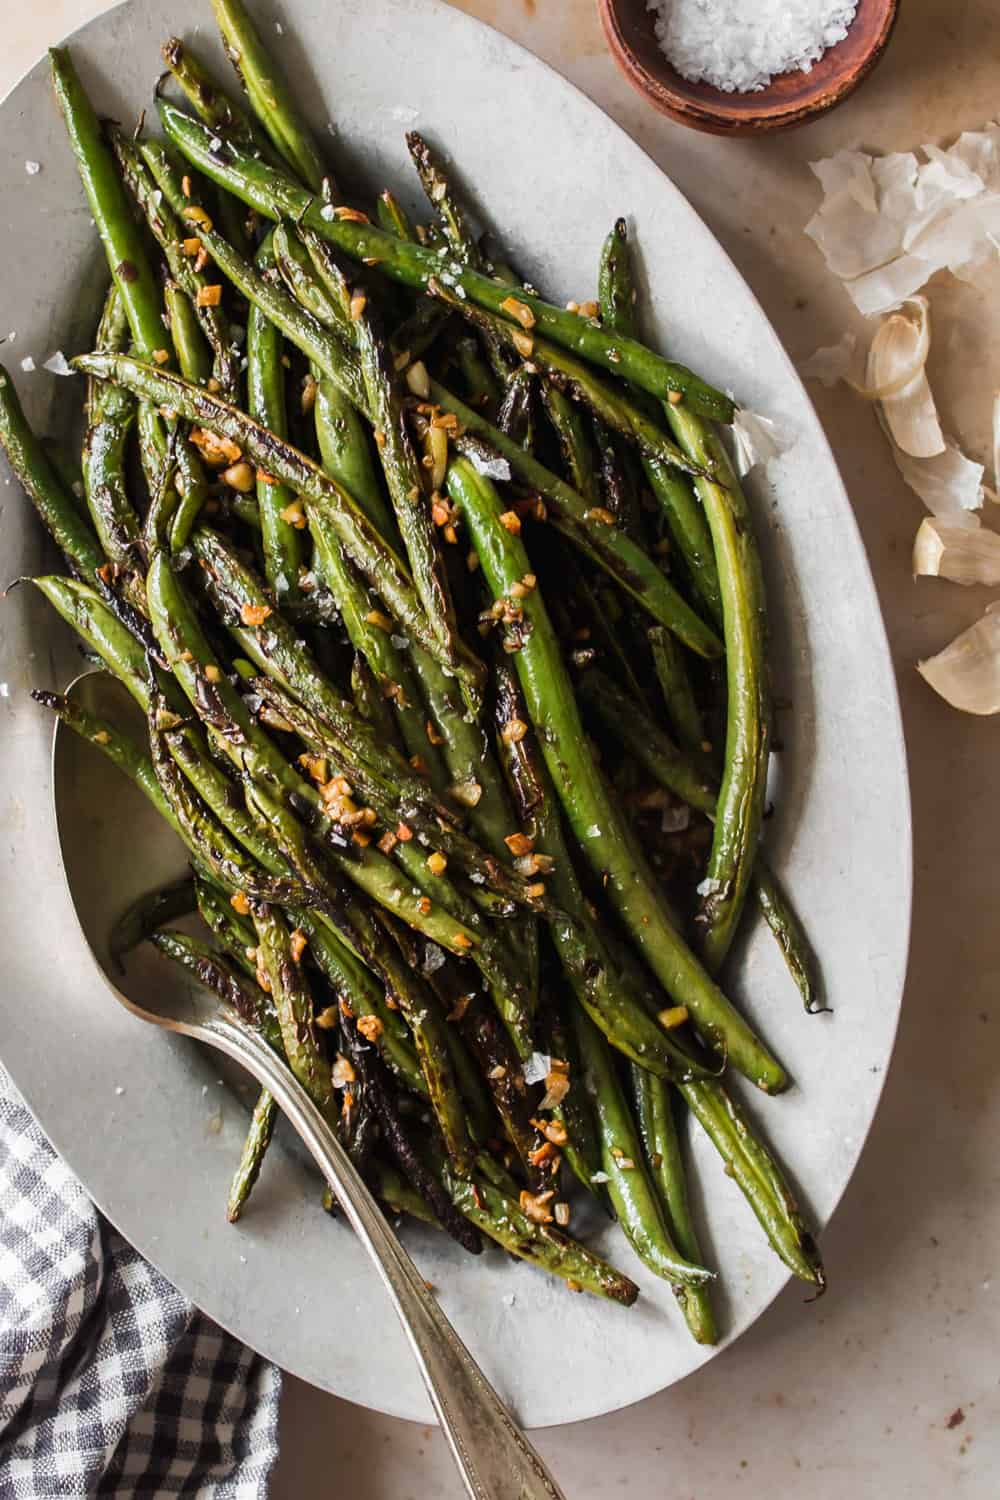 Large white serving dish full of cooked green beans